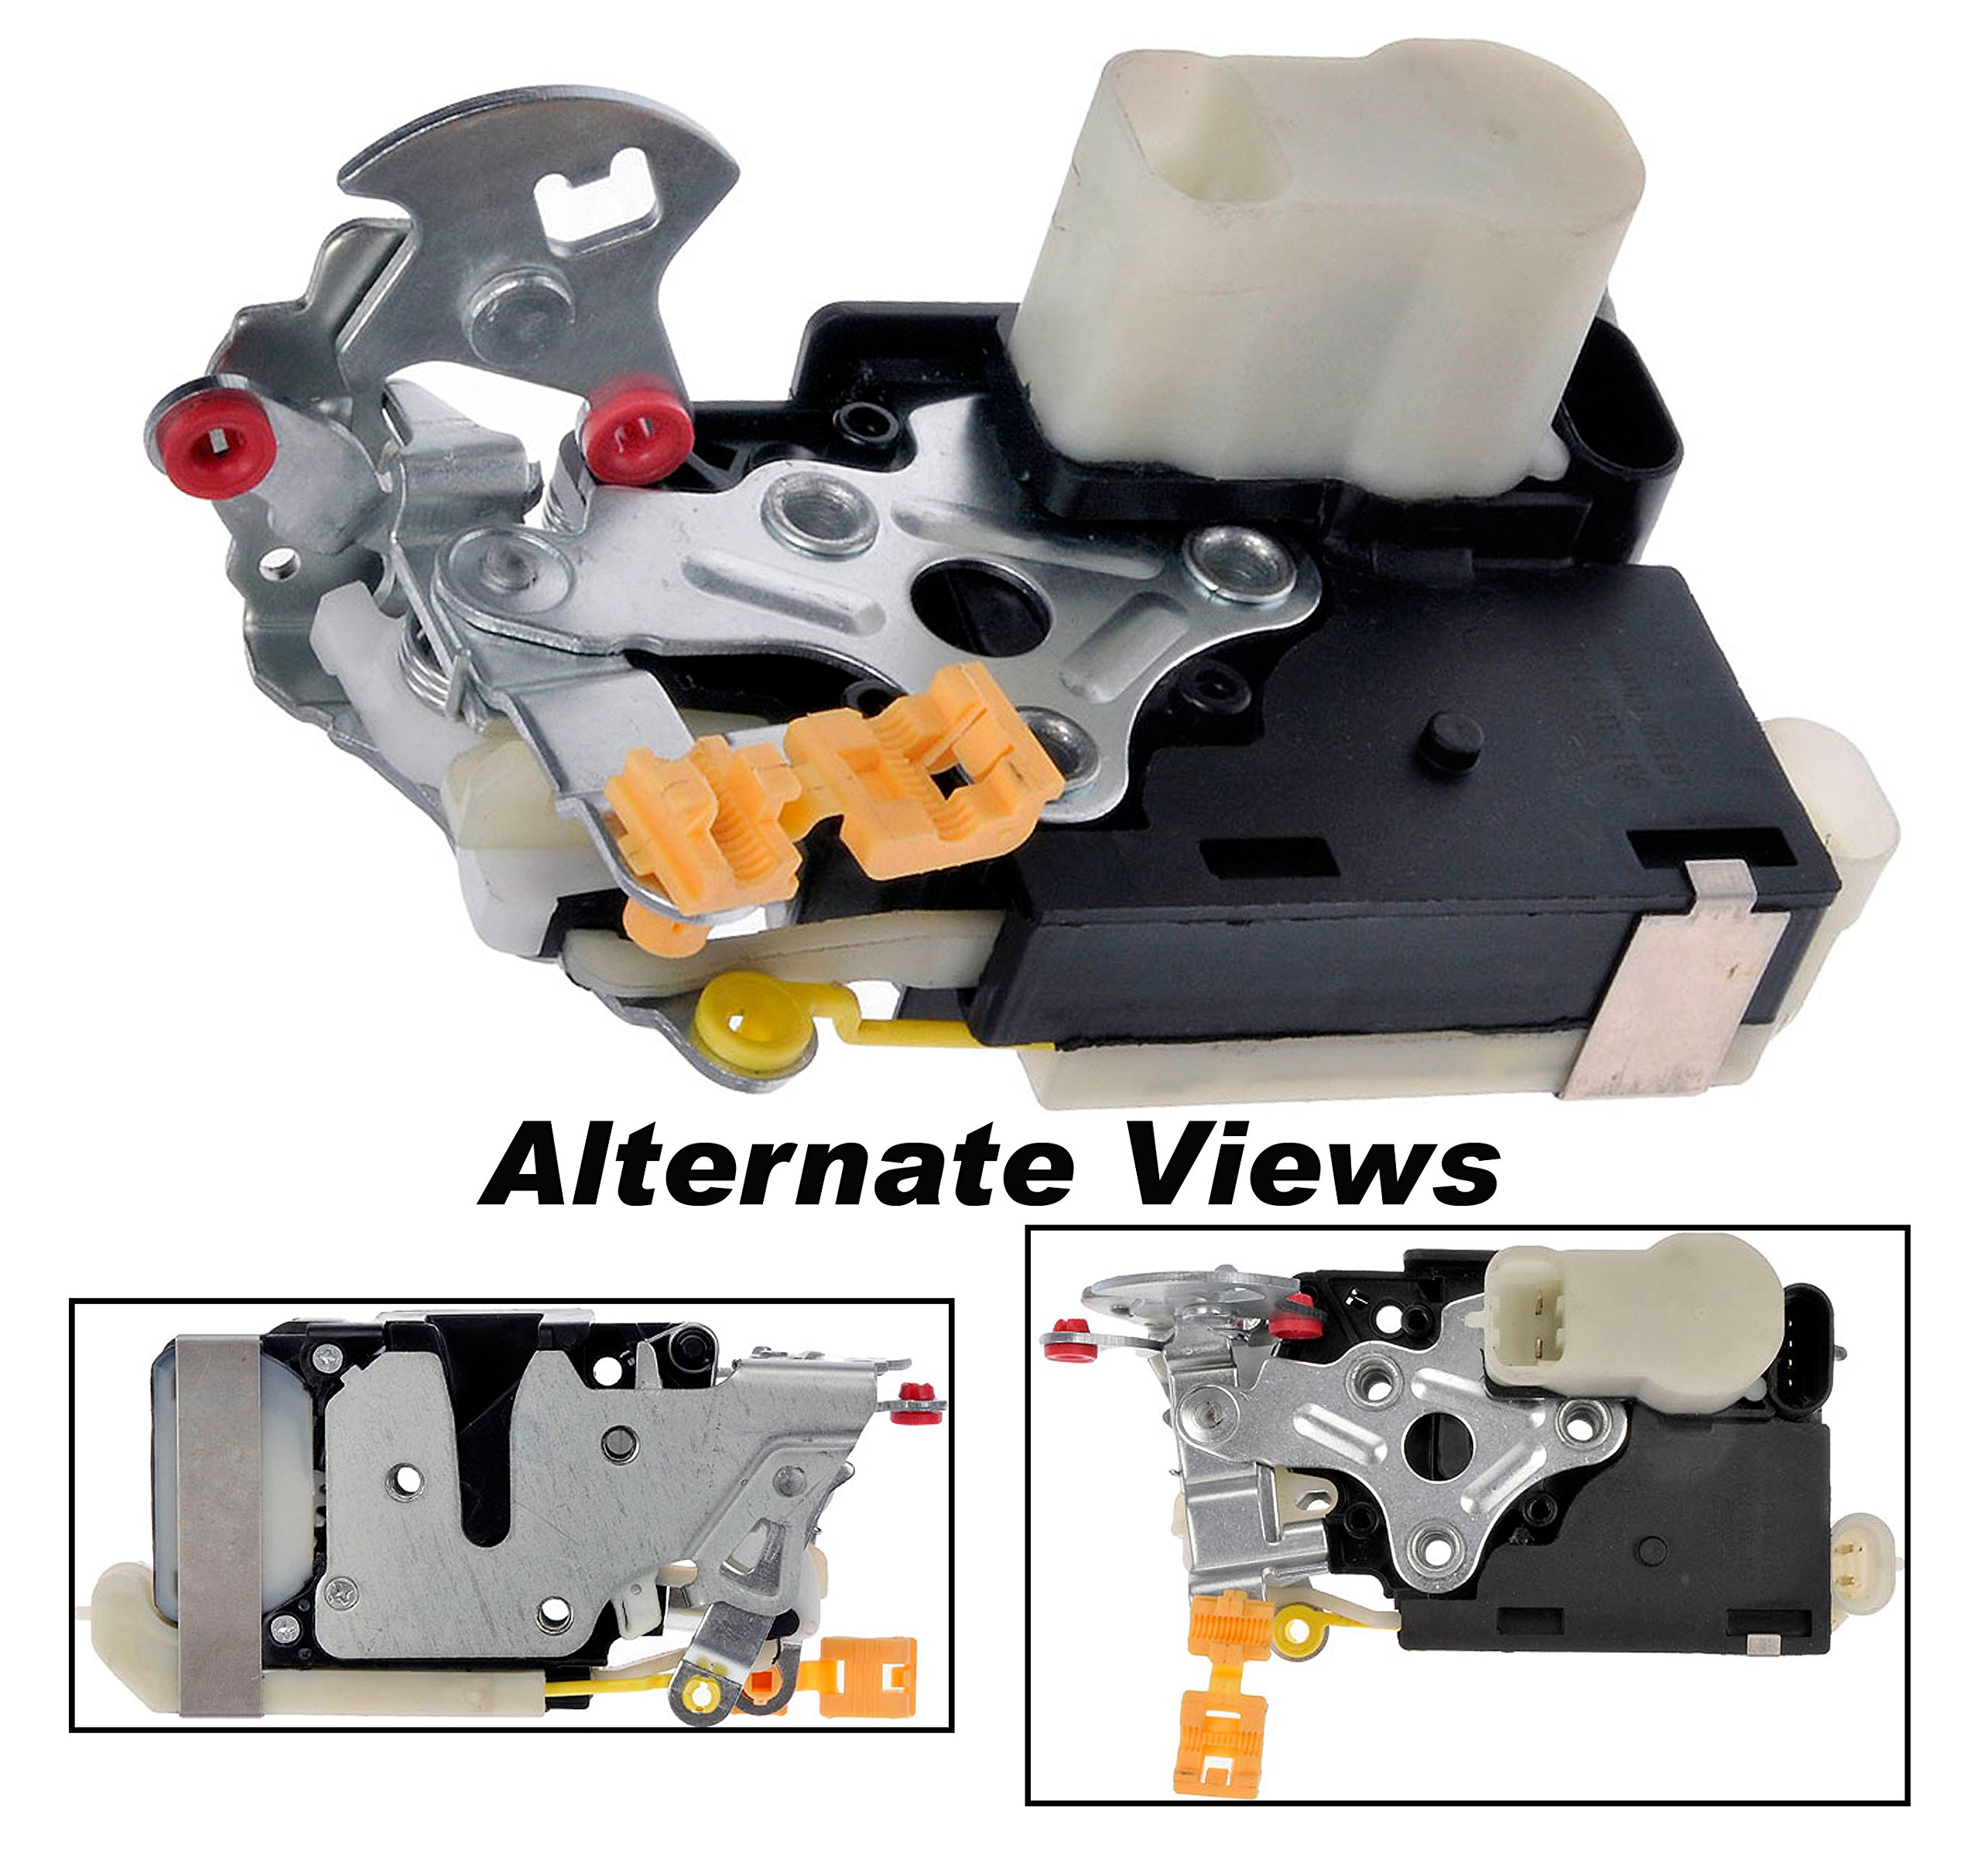 APDTY 112659 Door Lock Actuator Motor w/ Integrated Latch Assembly Front Left (View Chart For Specific Years) Lesabre Escalade Avalanche Silverado Pickup Suburban Tahoe Sierra Pickup Yukon Bonneville (Replaces 15053681, 15068499, 15110643) by APDTY